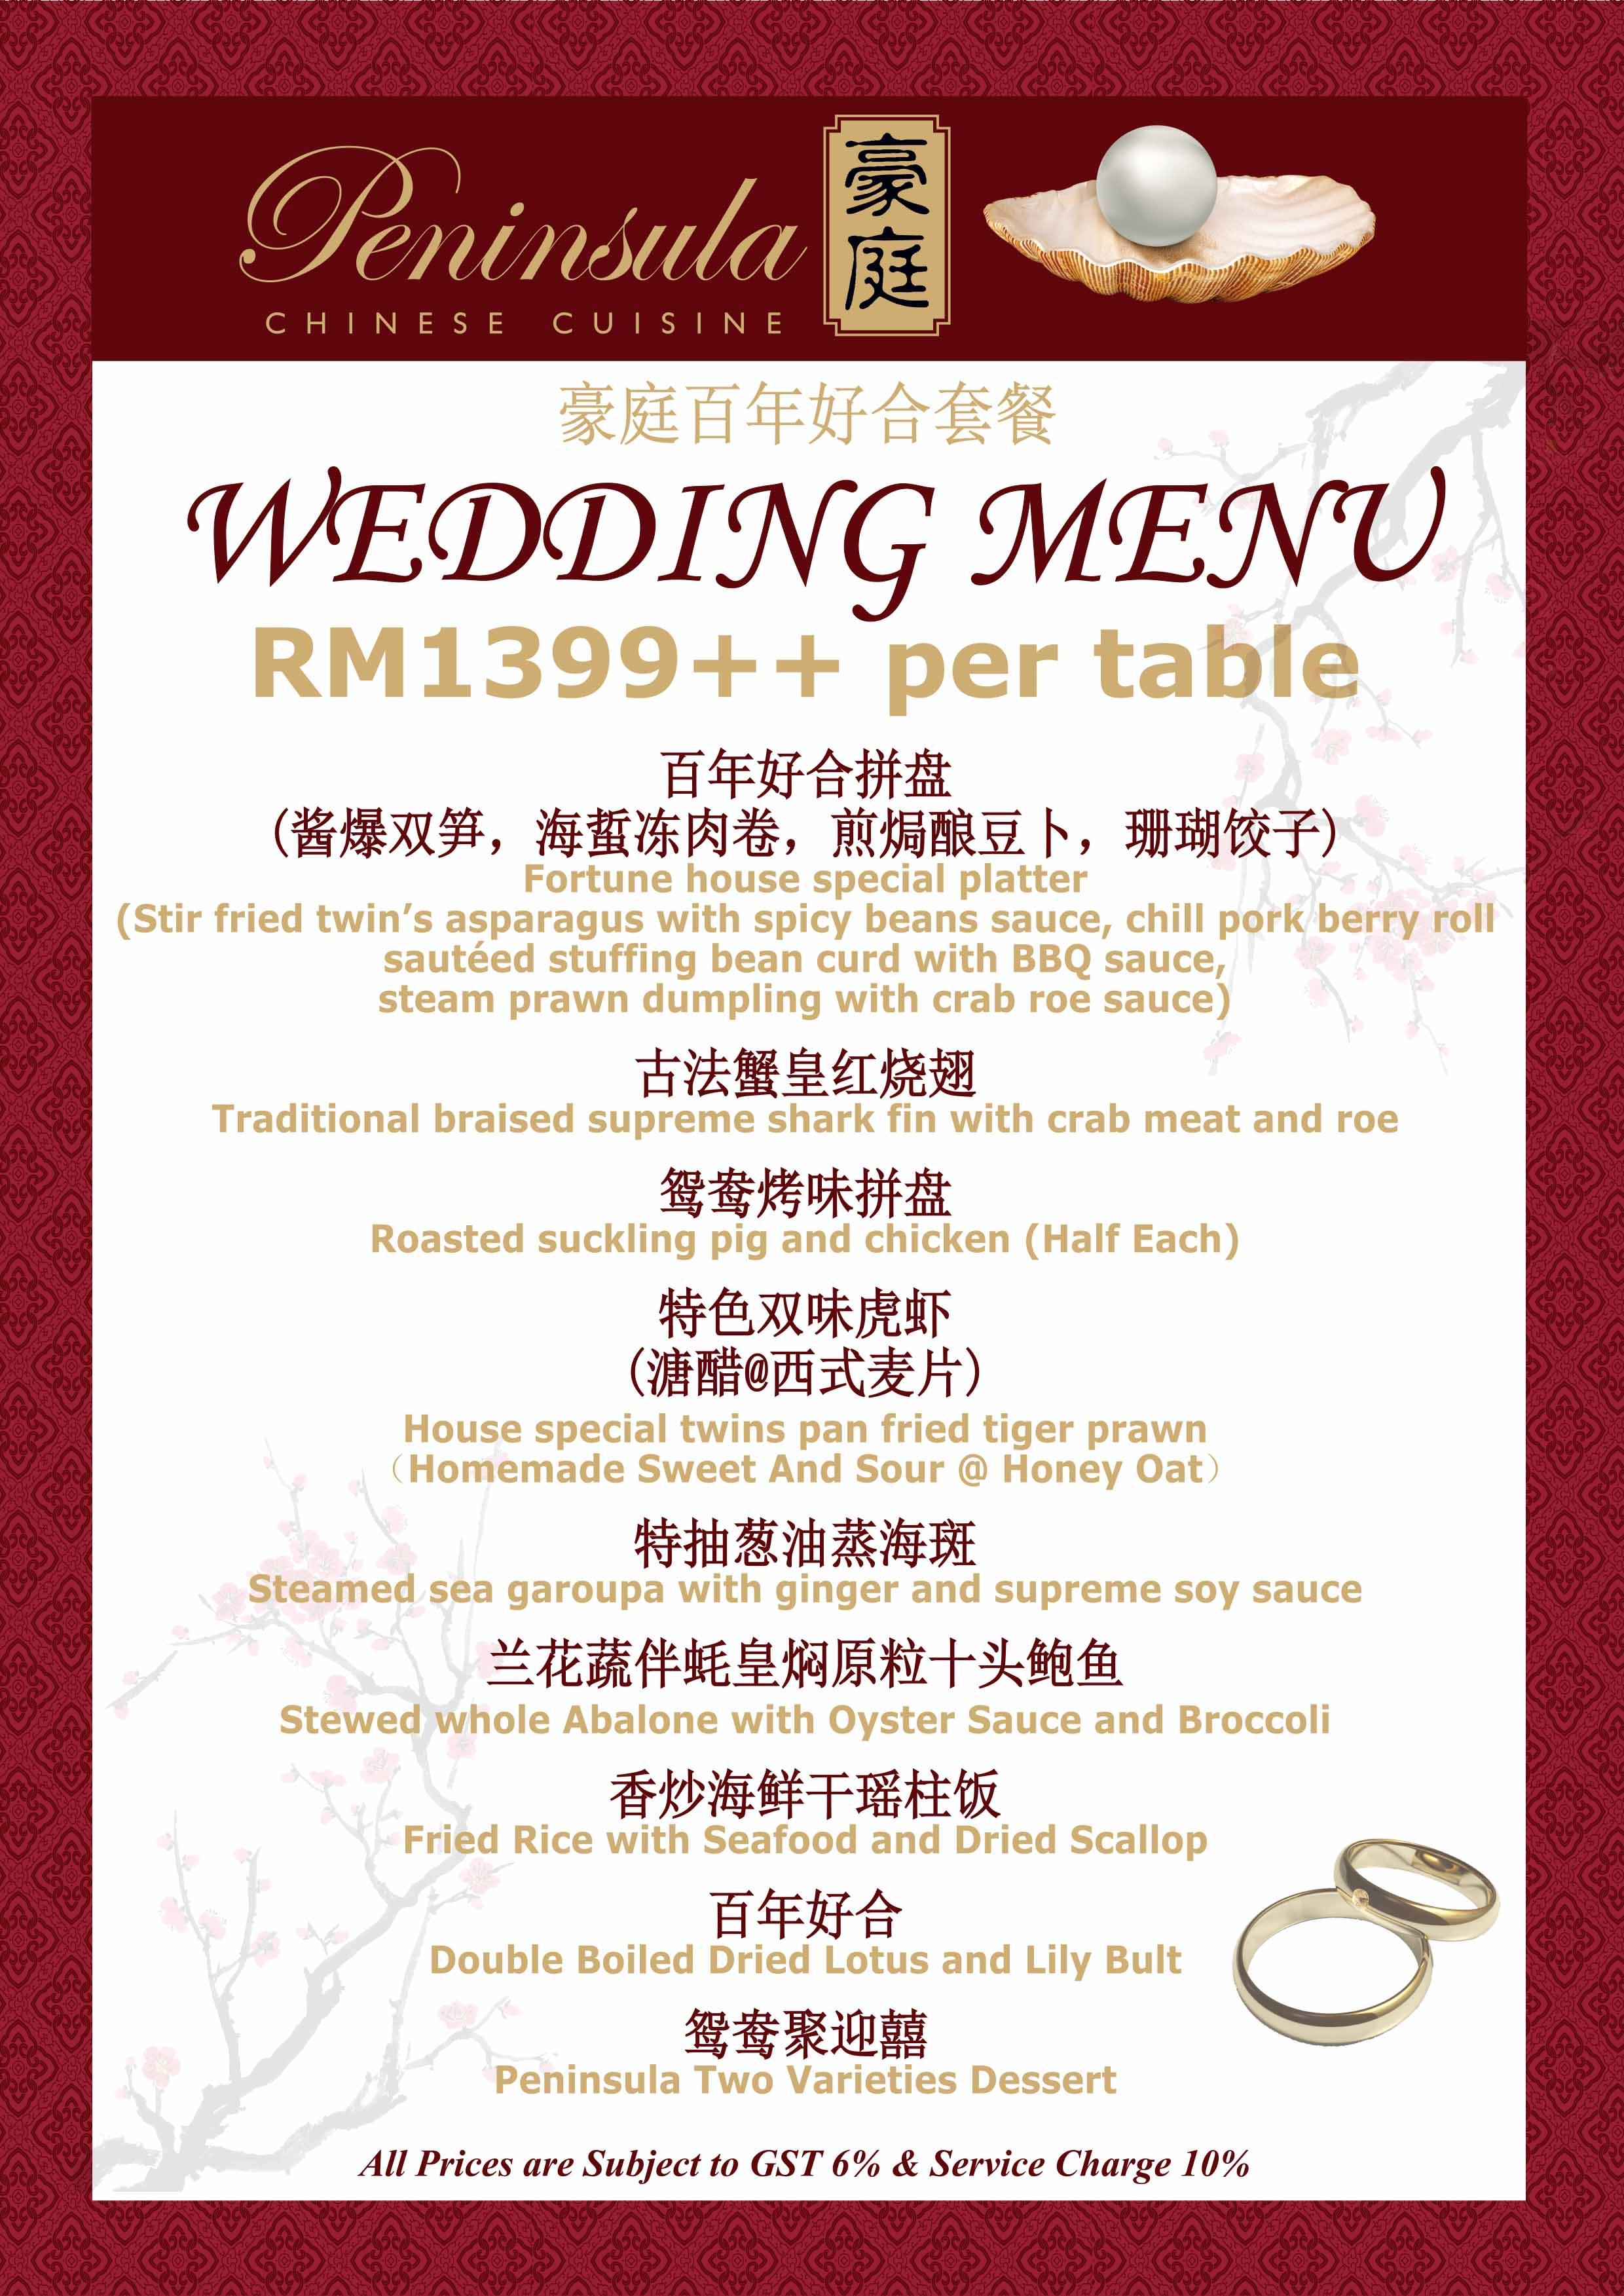 Rm 1399 Per Table